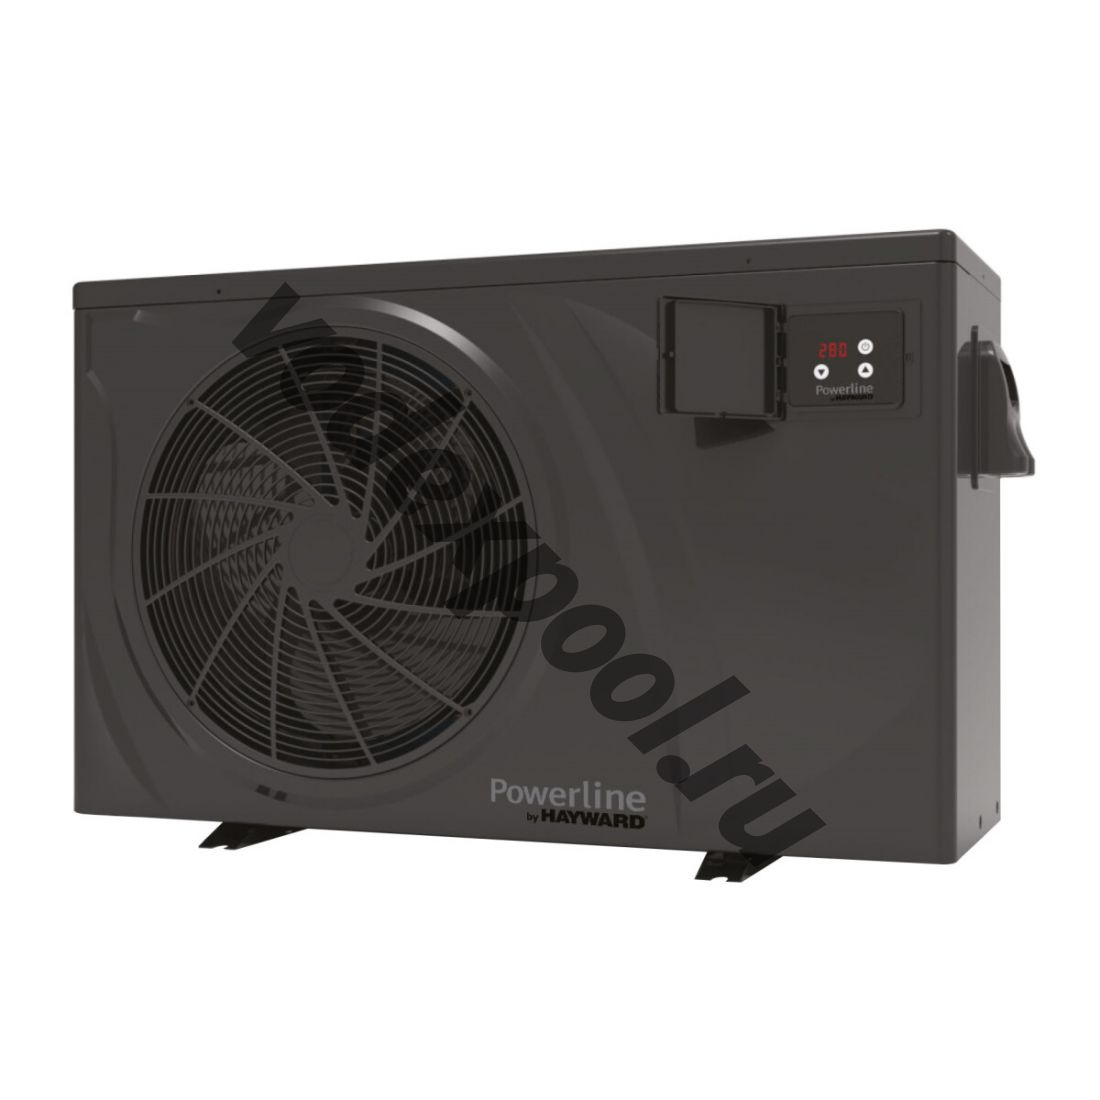 Тепловой насос Hayward Classic Powerline Inverter 8 (8 кВт)